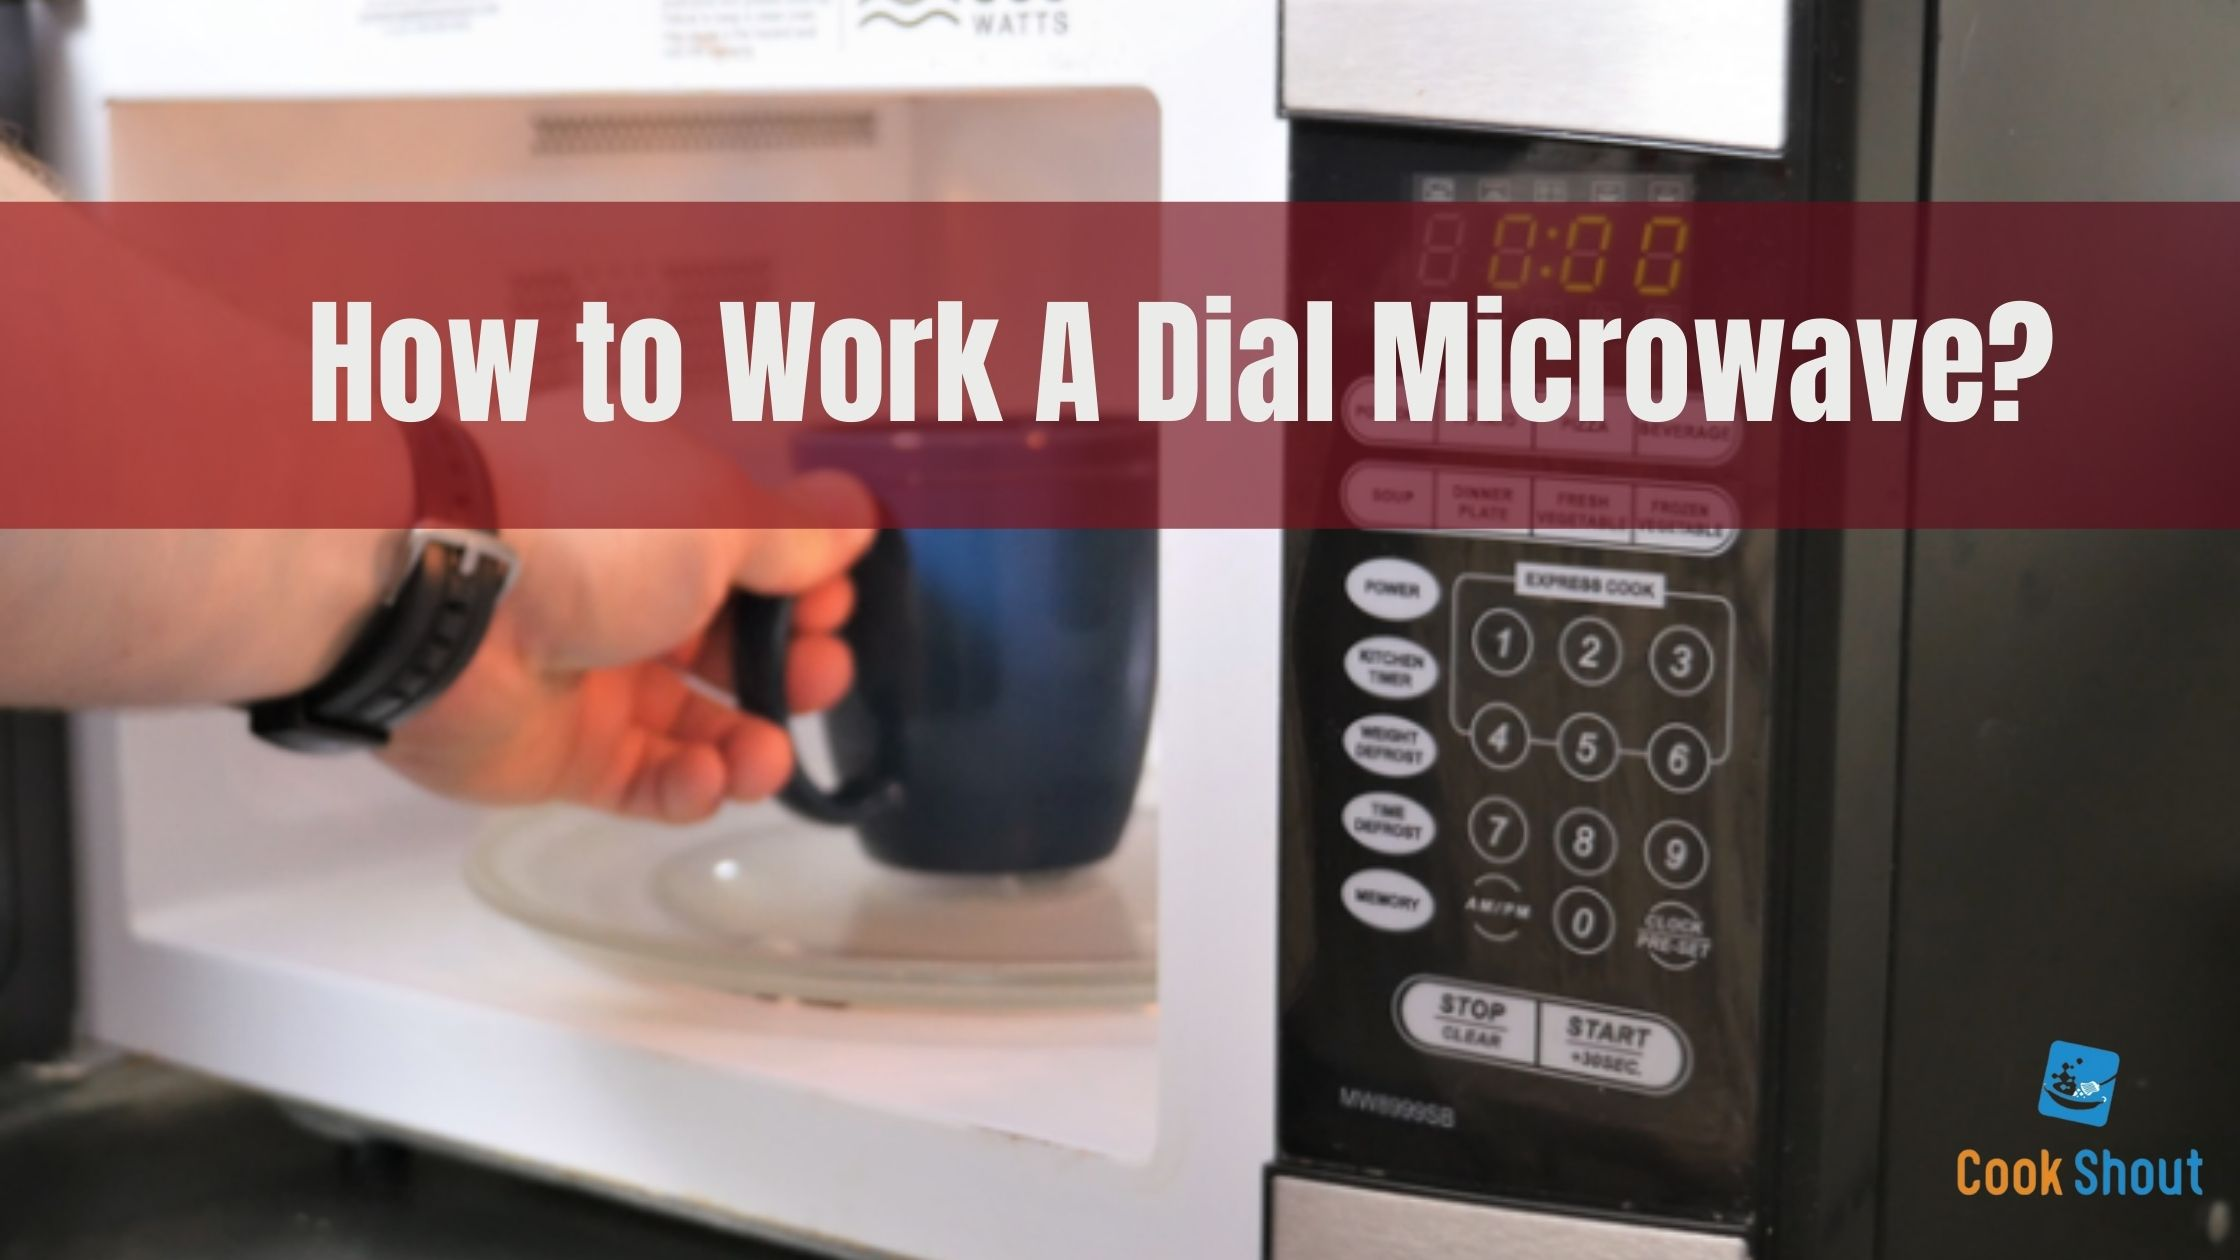 How to Work A Dial Microwave